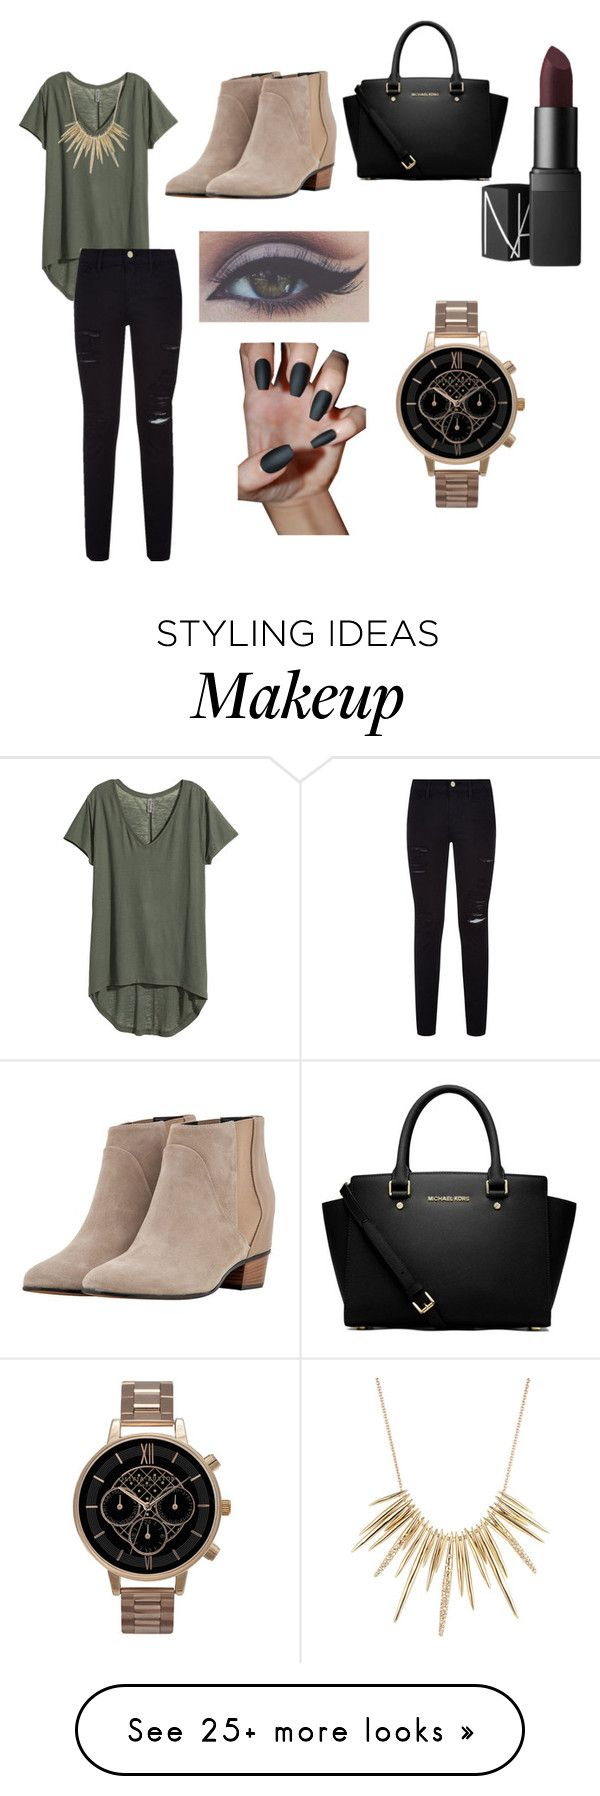 """Untitled #19"" by deviniamalone on Polyvore featuring mode, H&M, Frame Denim, Golden Goose, NARS Cosmetics, MICHAEL Michael Kors, Olivia Burton et Alexis Bittar"